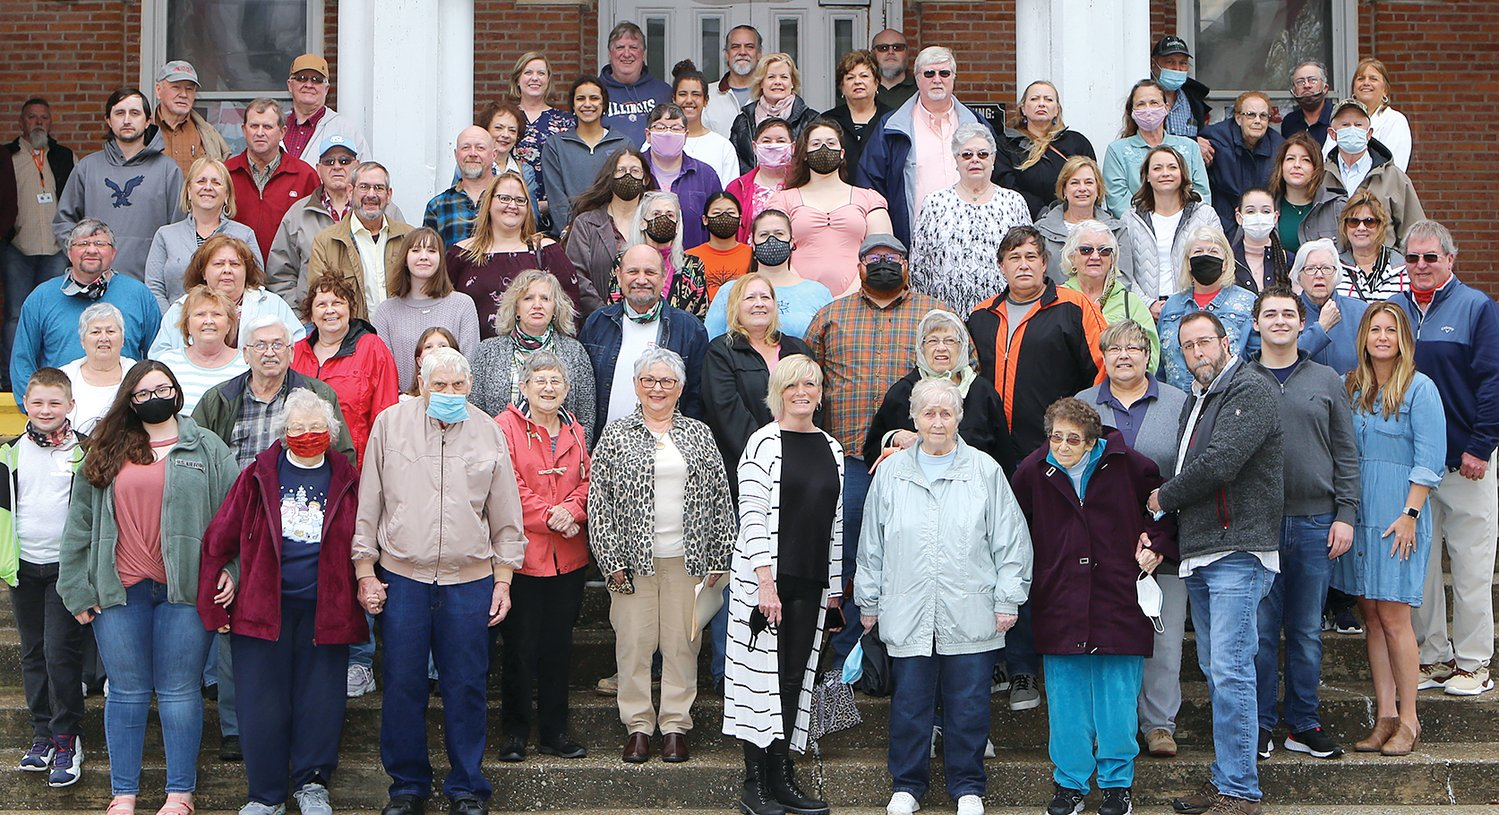 Descendants of original settlers of the county who still call Montgomery County home were honored during a bicentennial event on Saturday, April 10, at the Historic Courthouse in Hillsboro.  Each family was presented with a certificate and had a family photo taken.